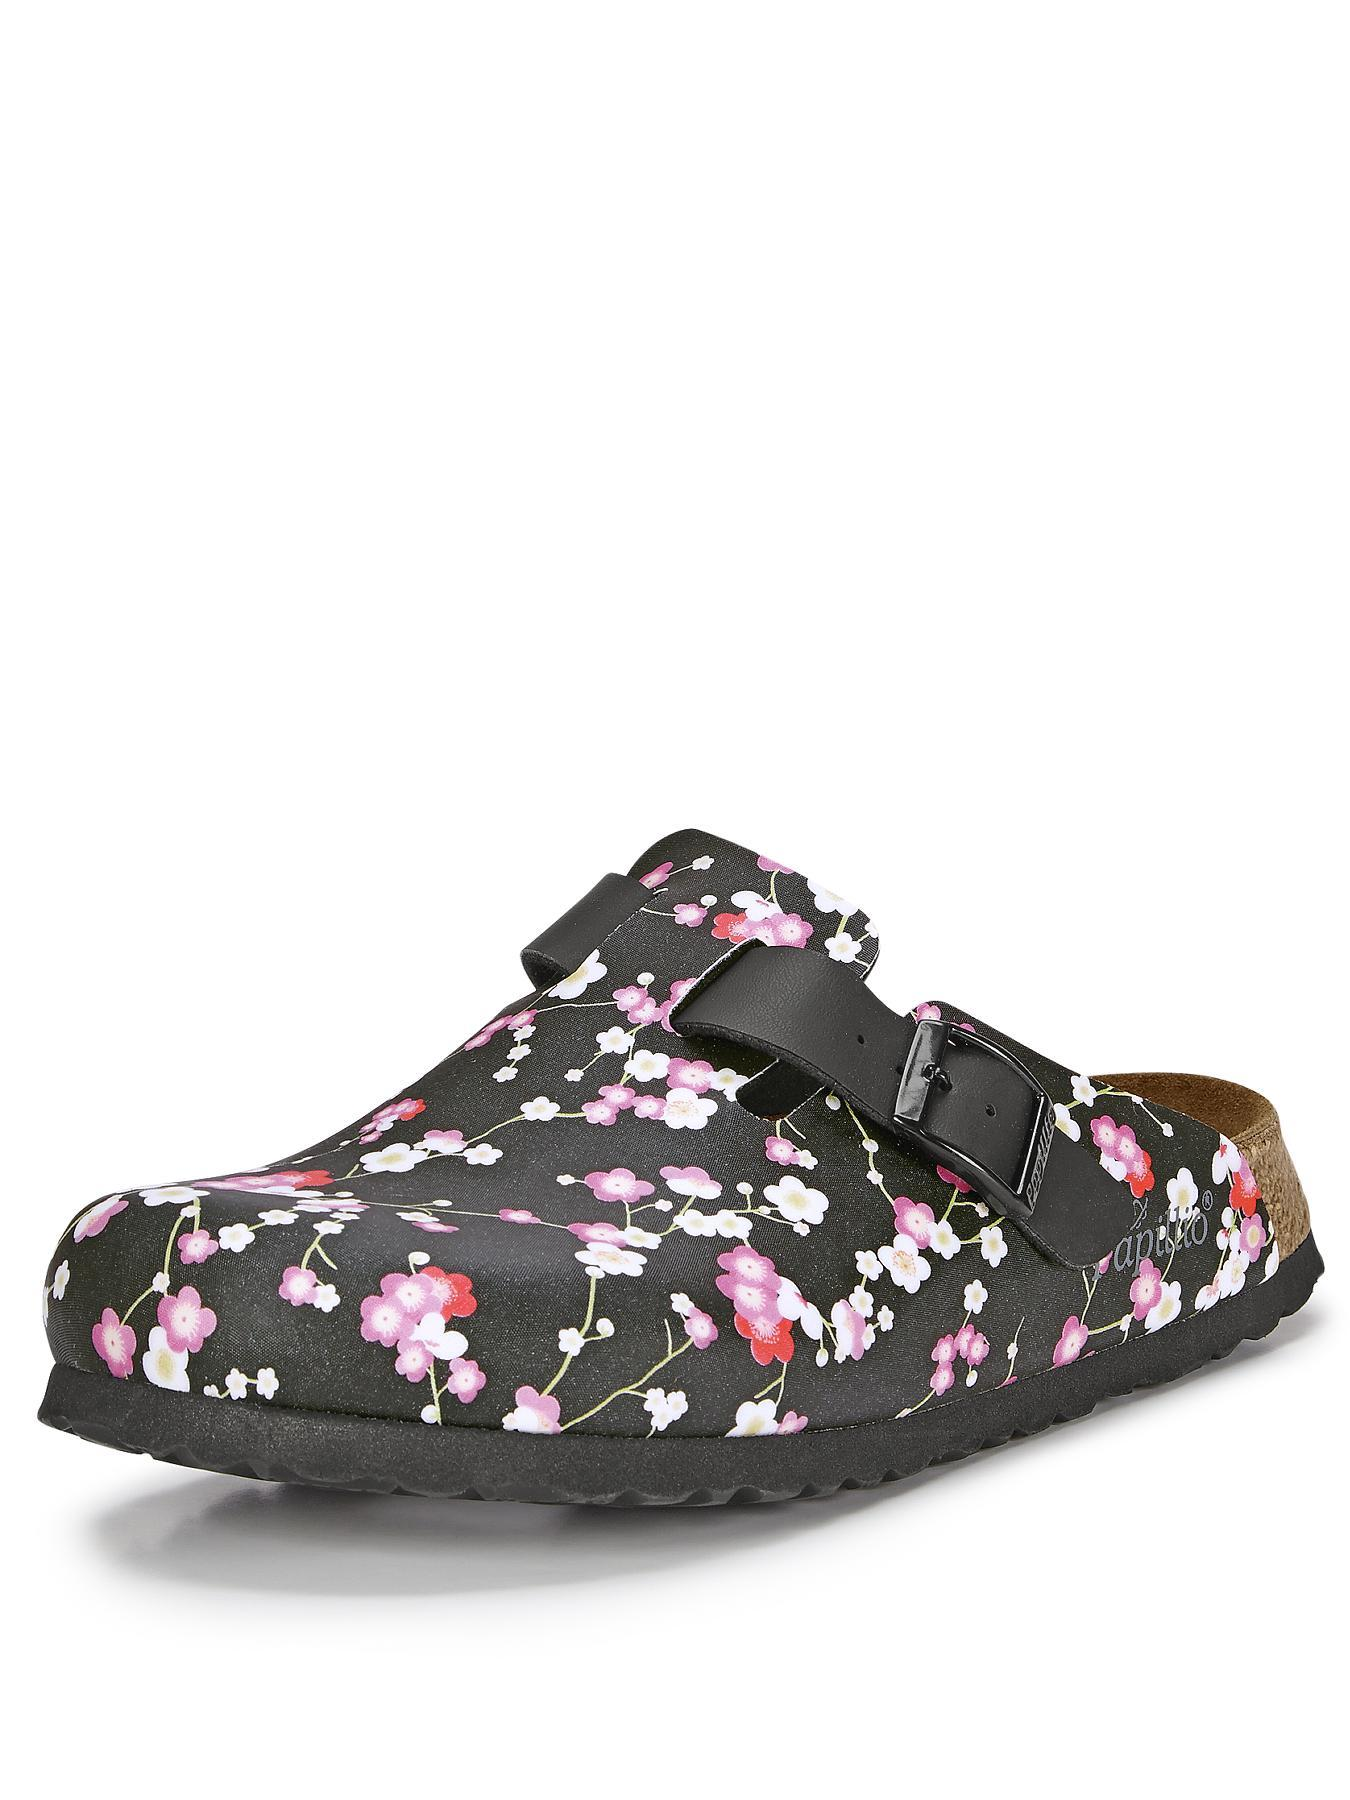 Boston Floral SlipOn Clogs suki black